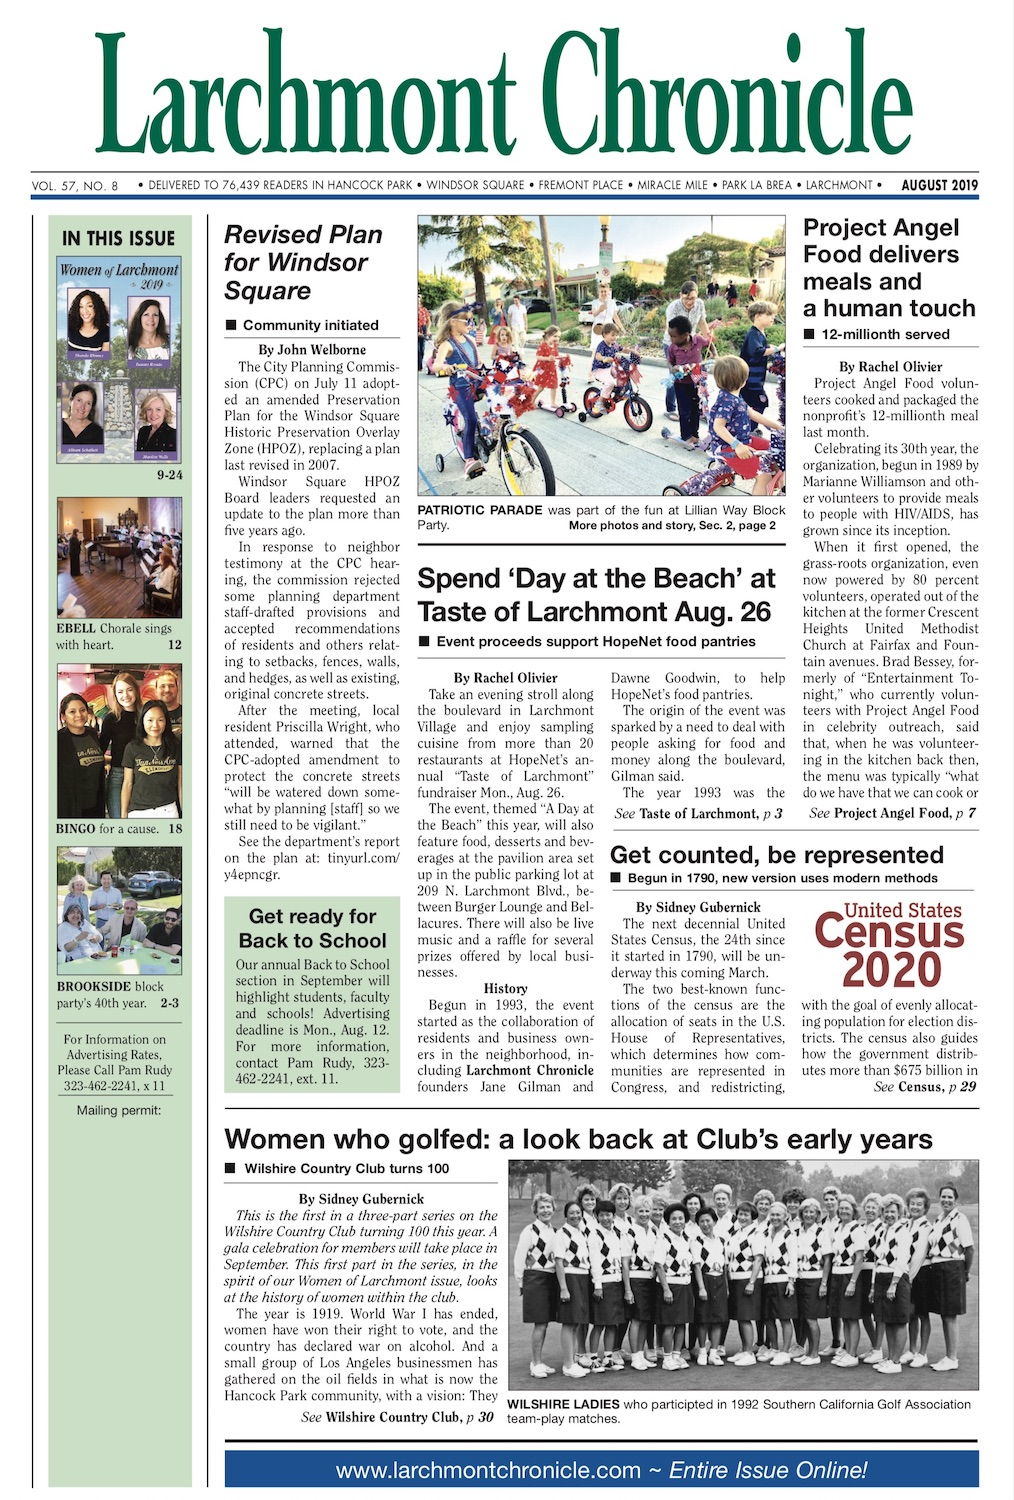 Larchmont Chronicle August 2019 full issue